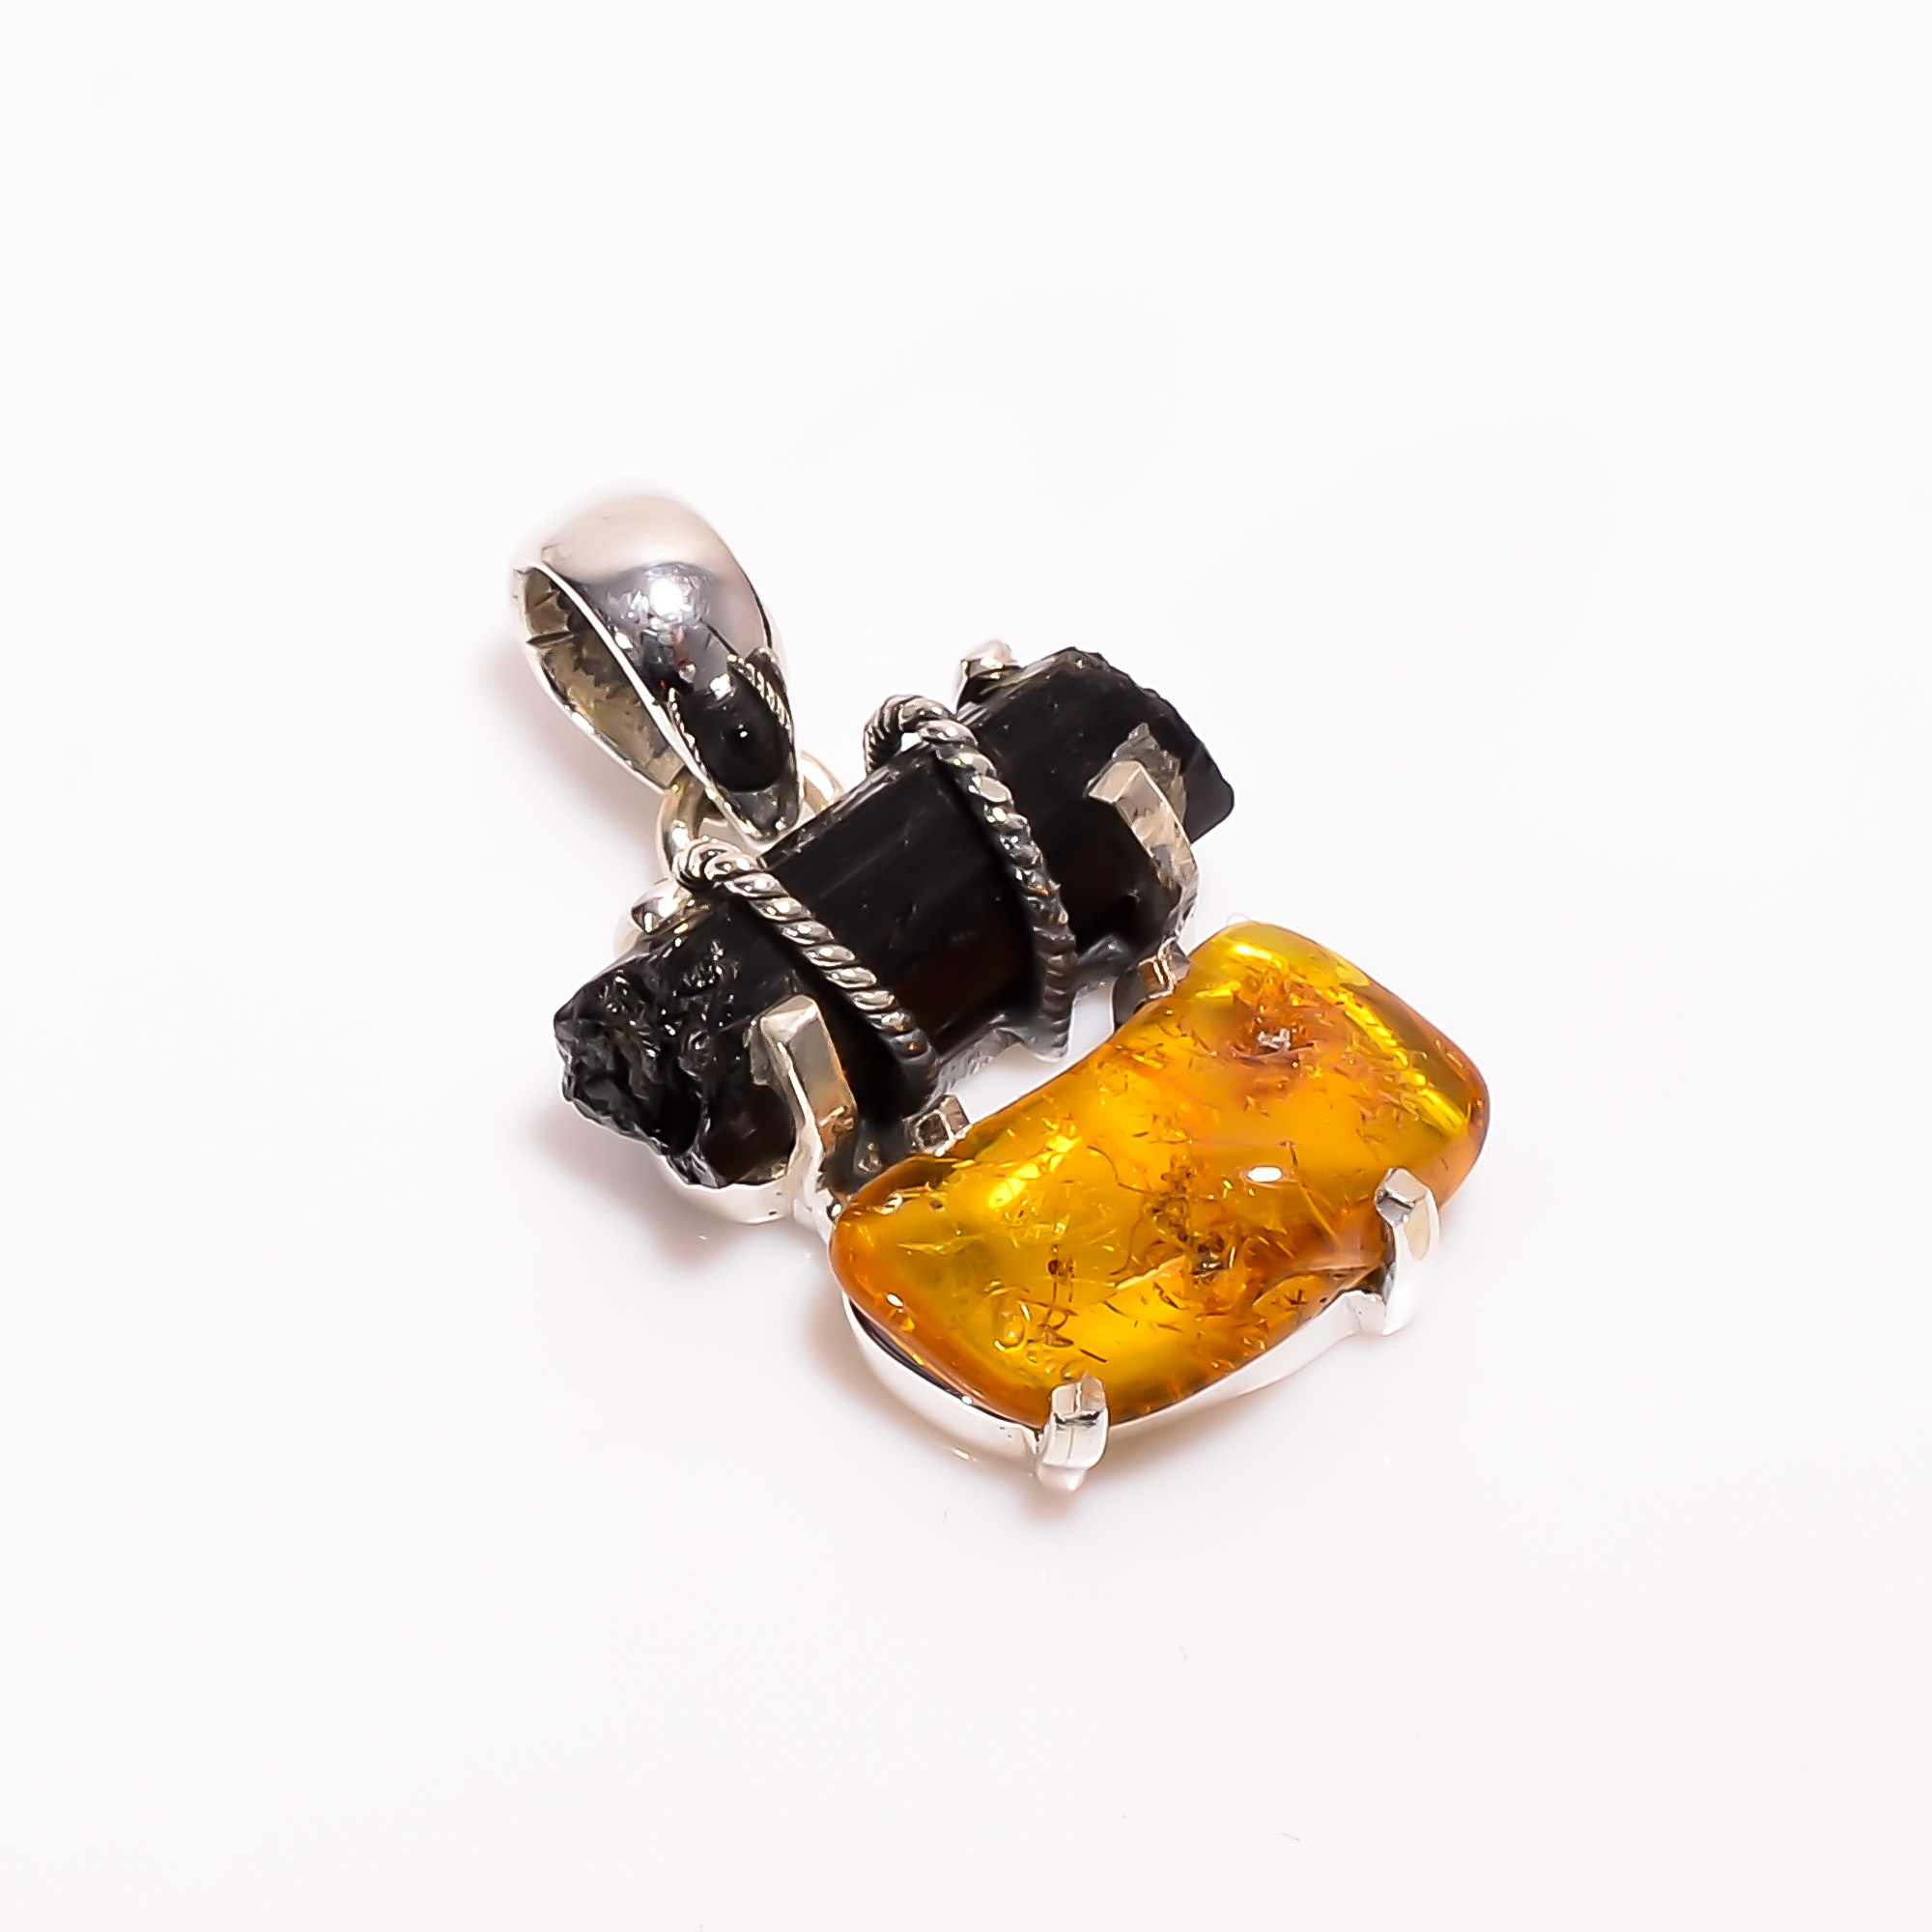 Natural Black Tourmaline Amber Raw Gemstone 925 Sterling Silver Pendant